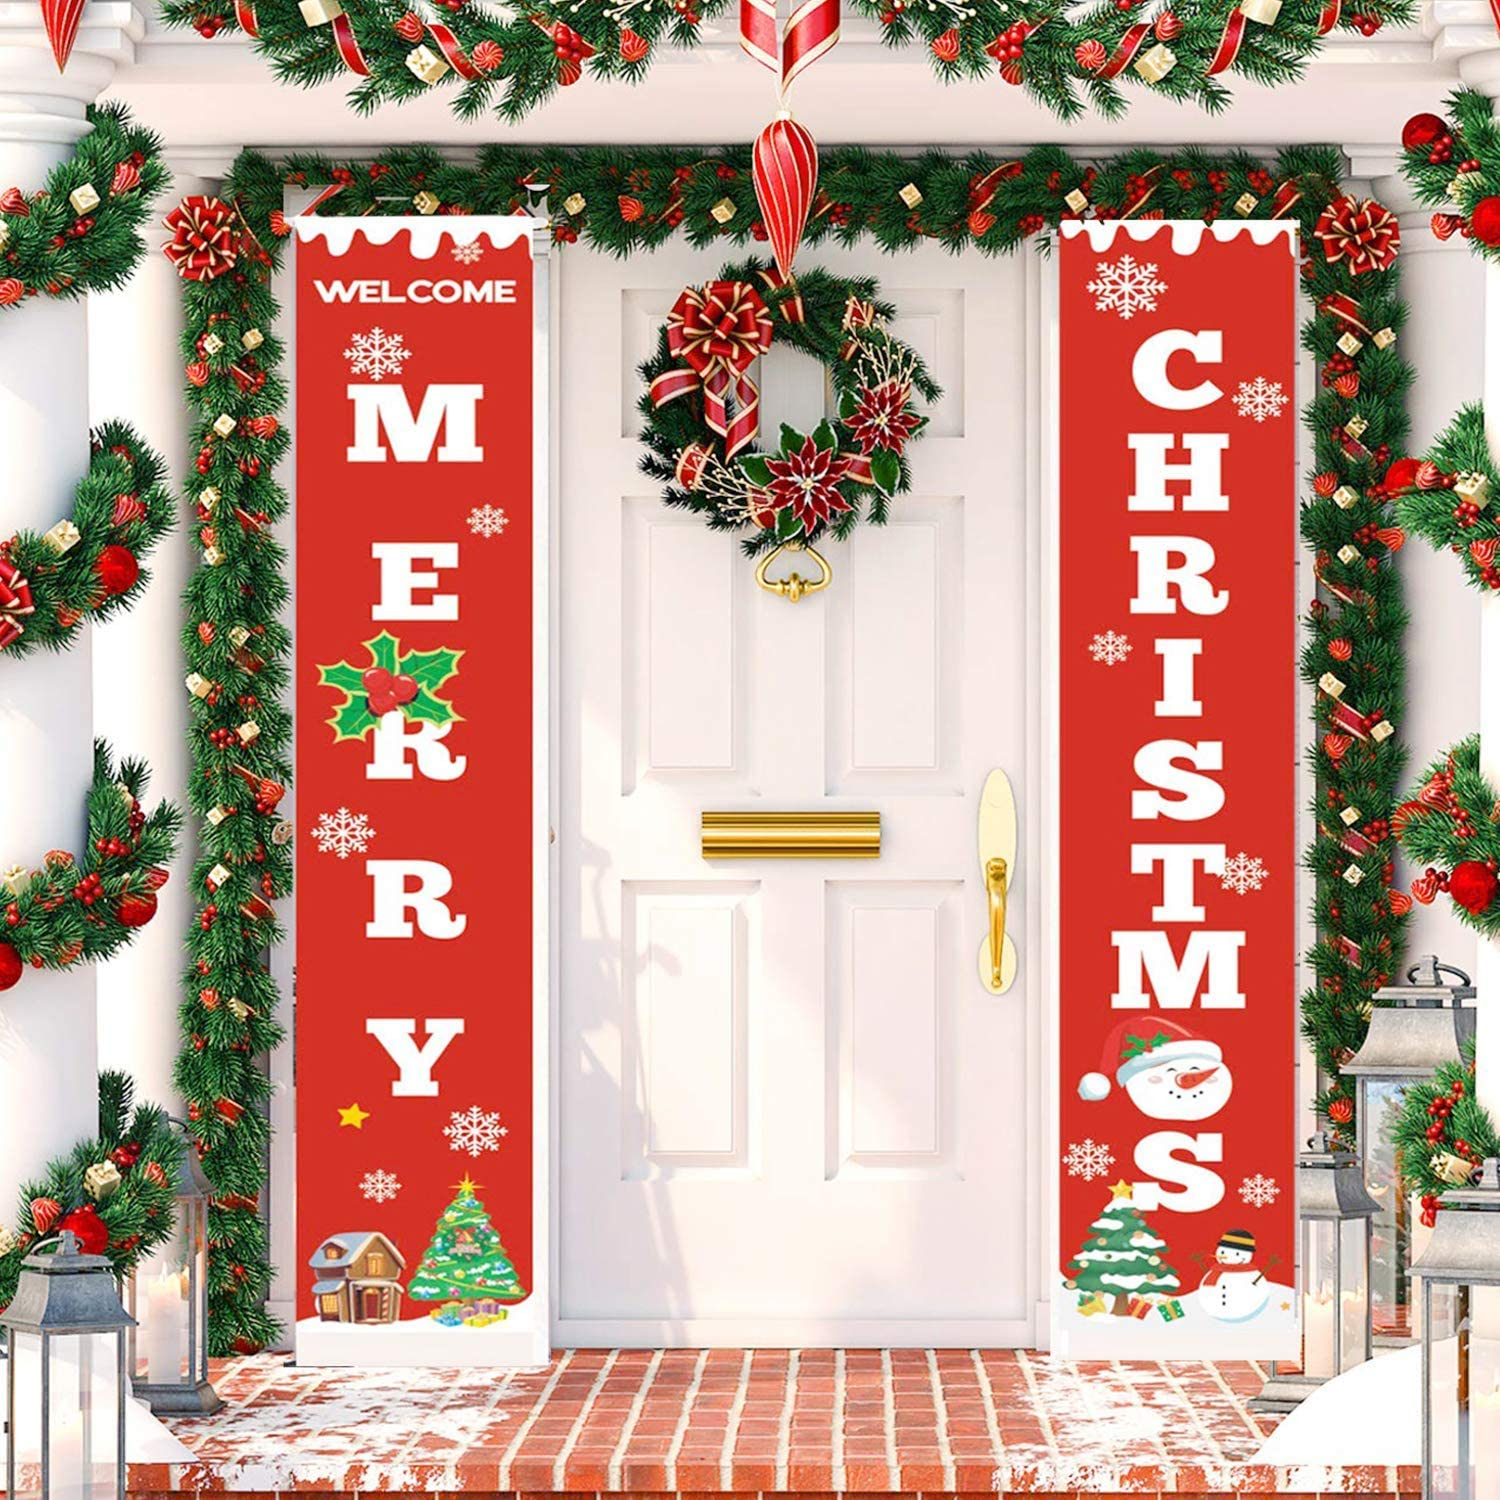 TOPLEE 2 PCS Merry Christmas Porch Banner 12''x72'' Front Door Signs Decor Christmas Tree Snowman Snowflakes Welcome Christmas Hanging Banner Wall Outdoor Indoor Party Decoration